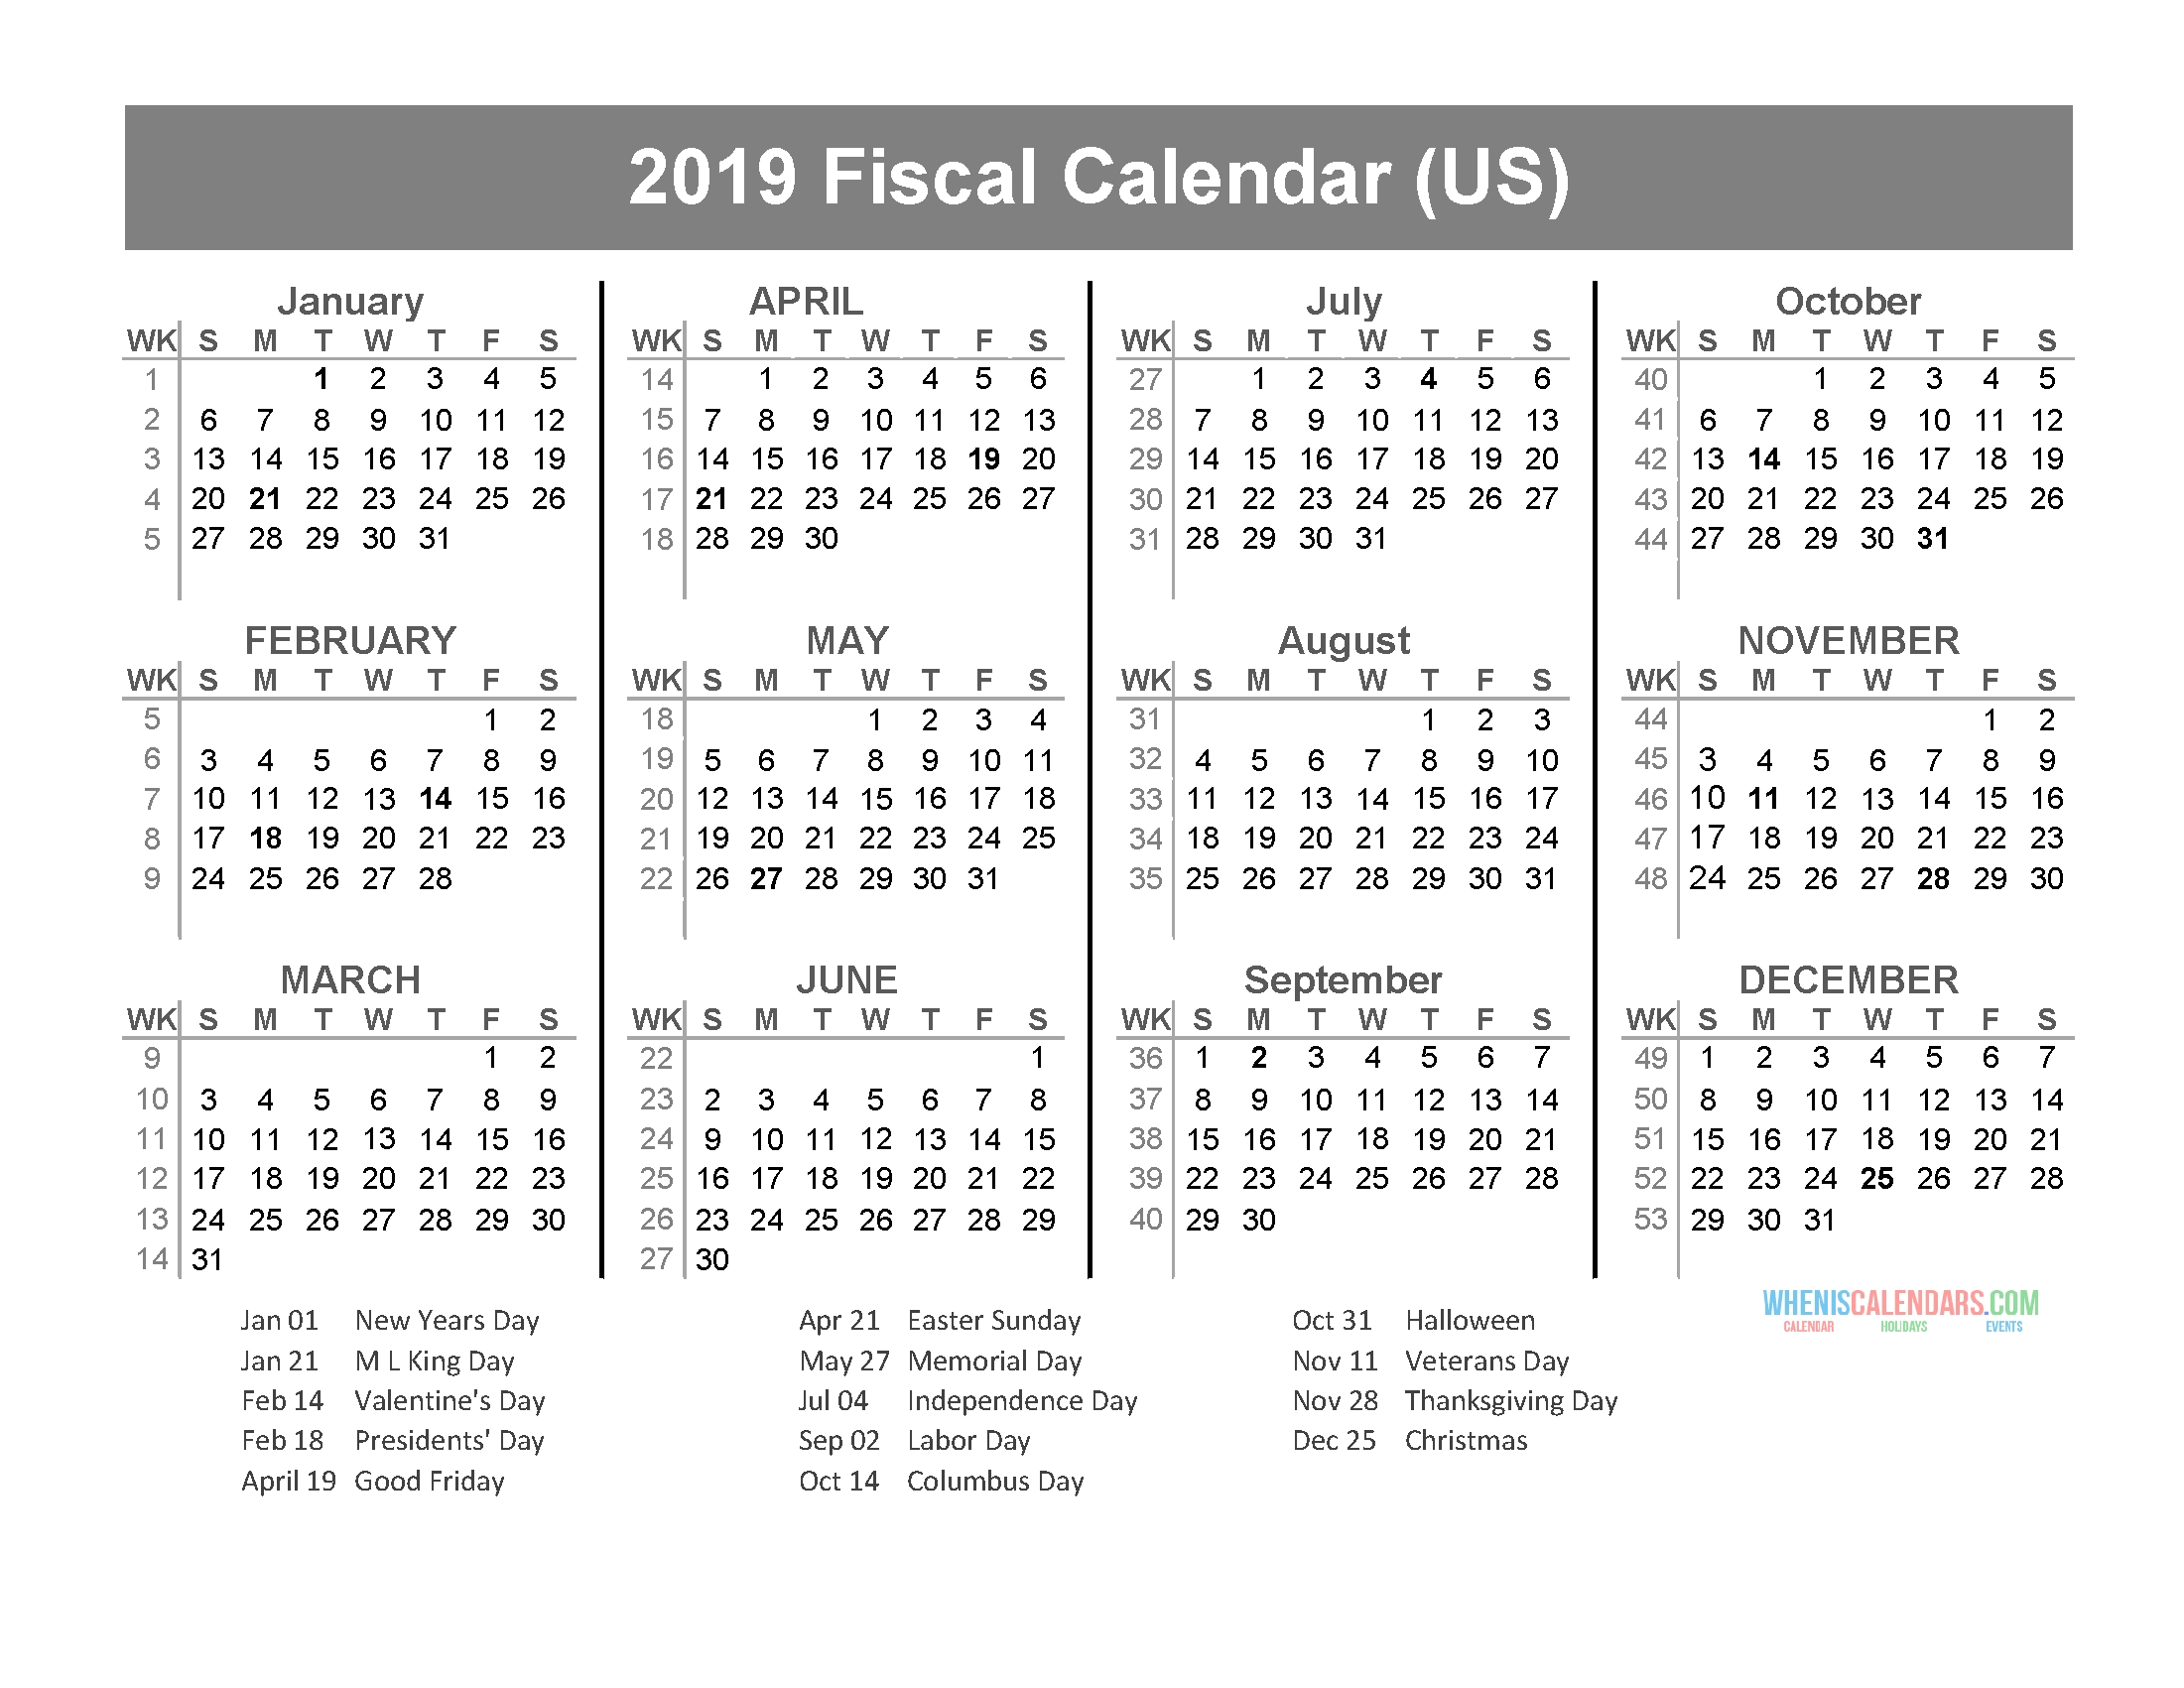 Fiscal Year 2019 Calendar With Us Holidays (January To for Us Financial Calendar Week Numbers